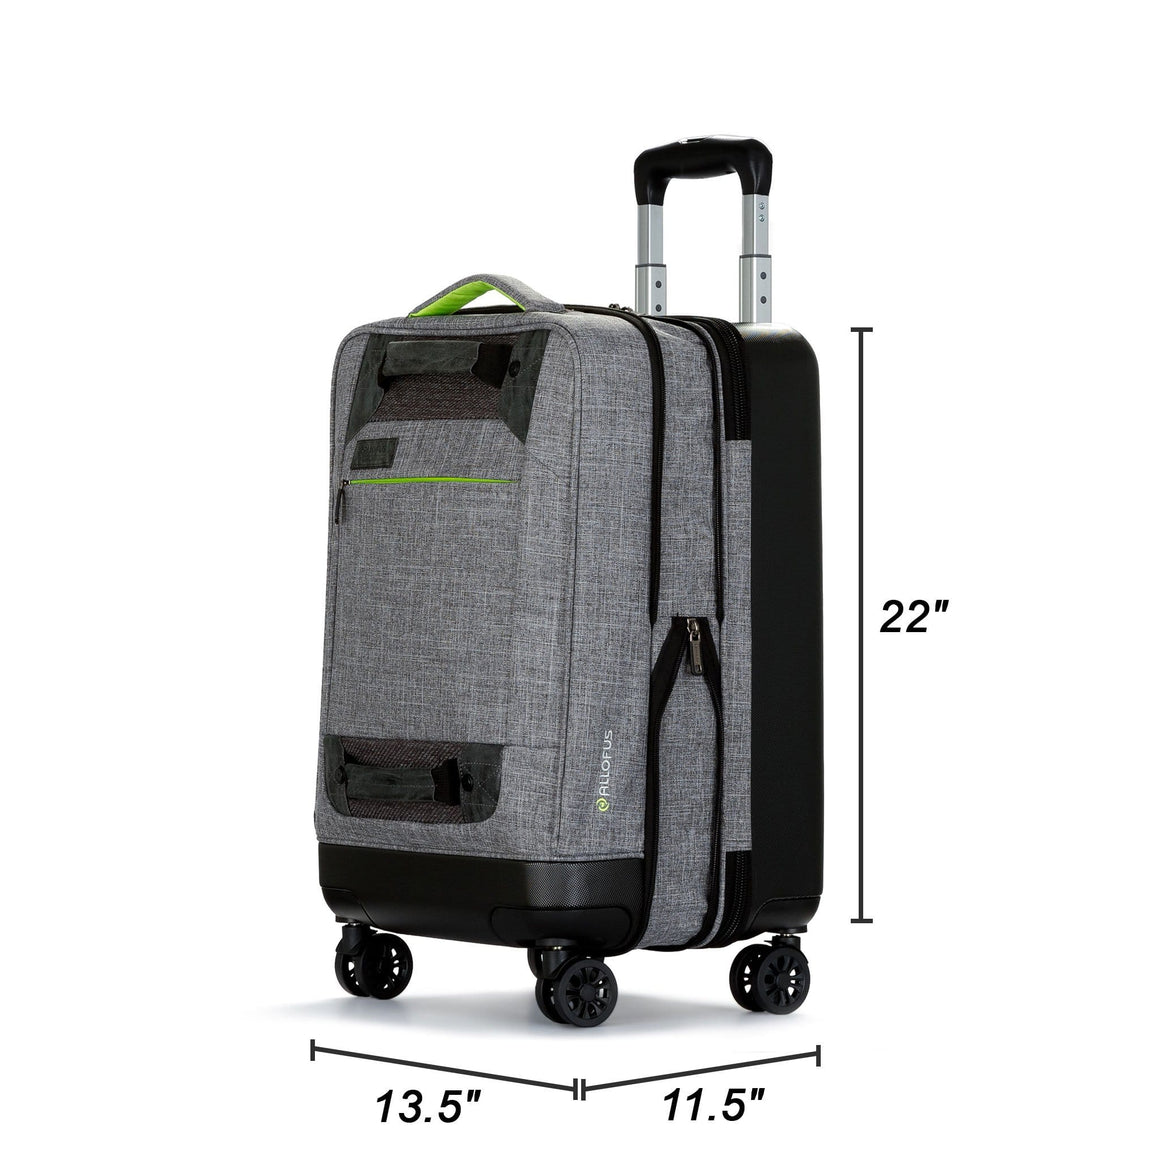 All of Us 22 inch Lightweight Hybrid Rolling Carry On Spinner Suitcase